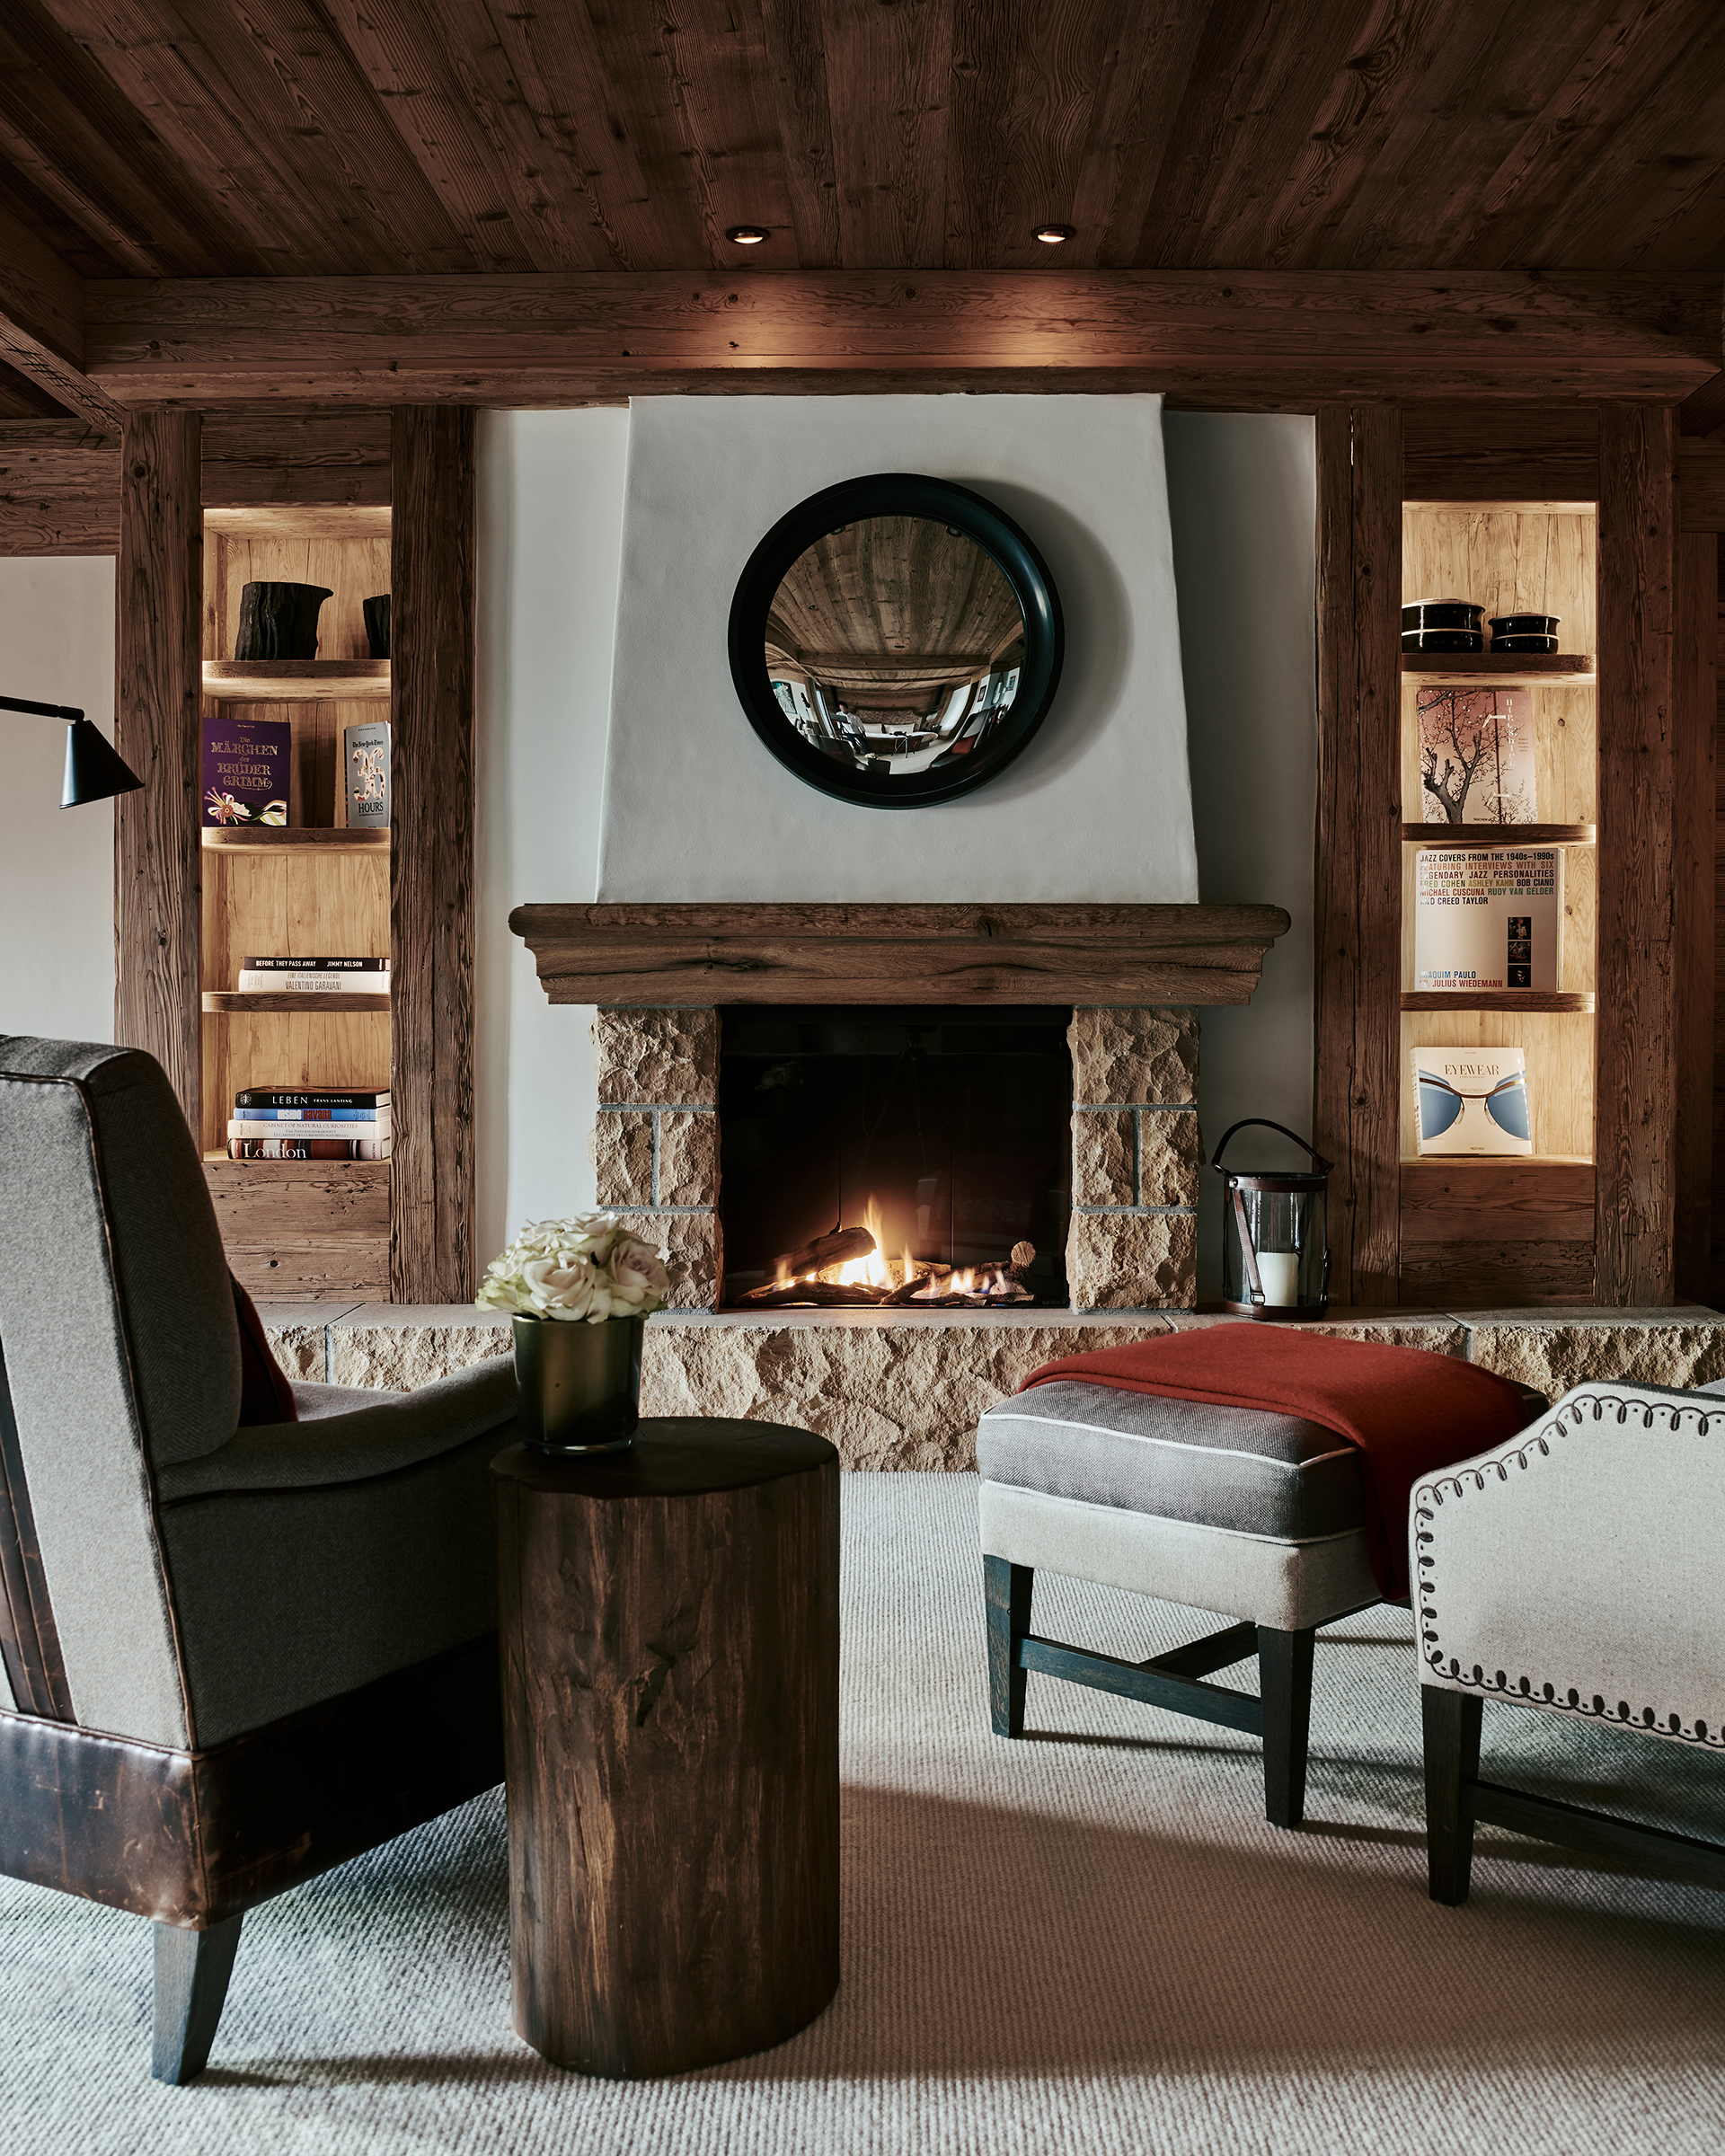 TheAlpinaGstaad_Rooms&Suites_0041_1920.jpg